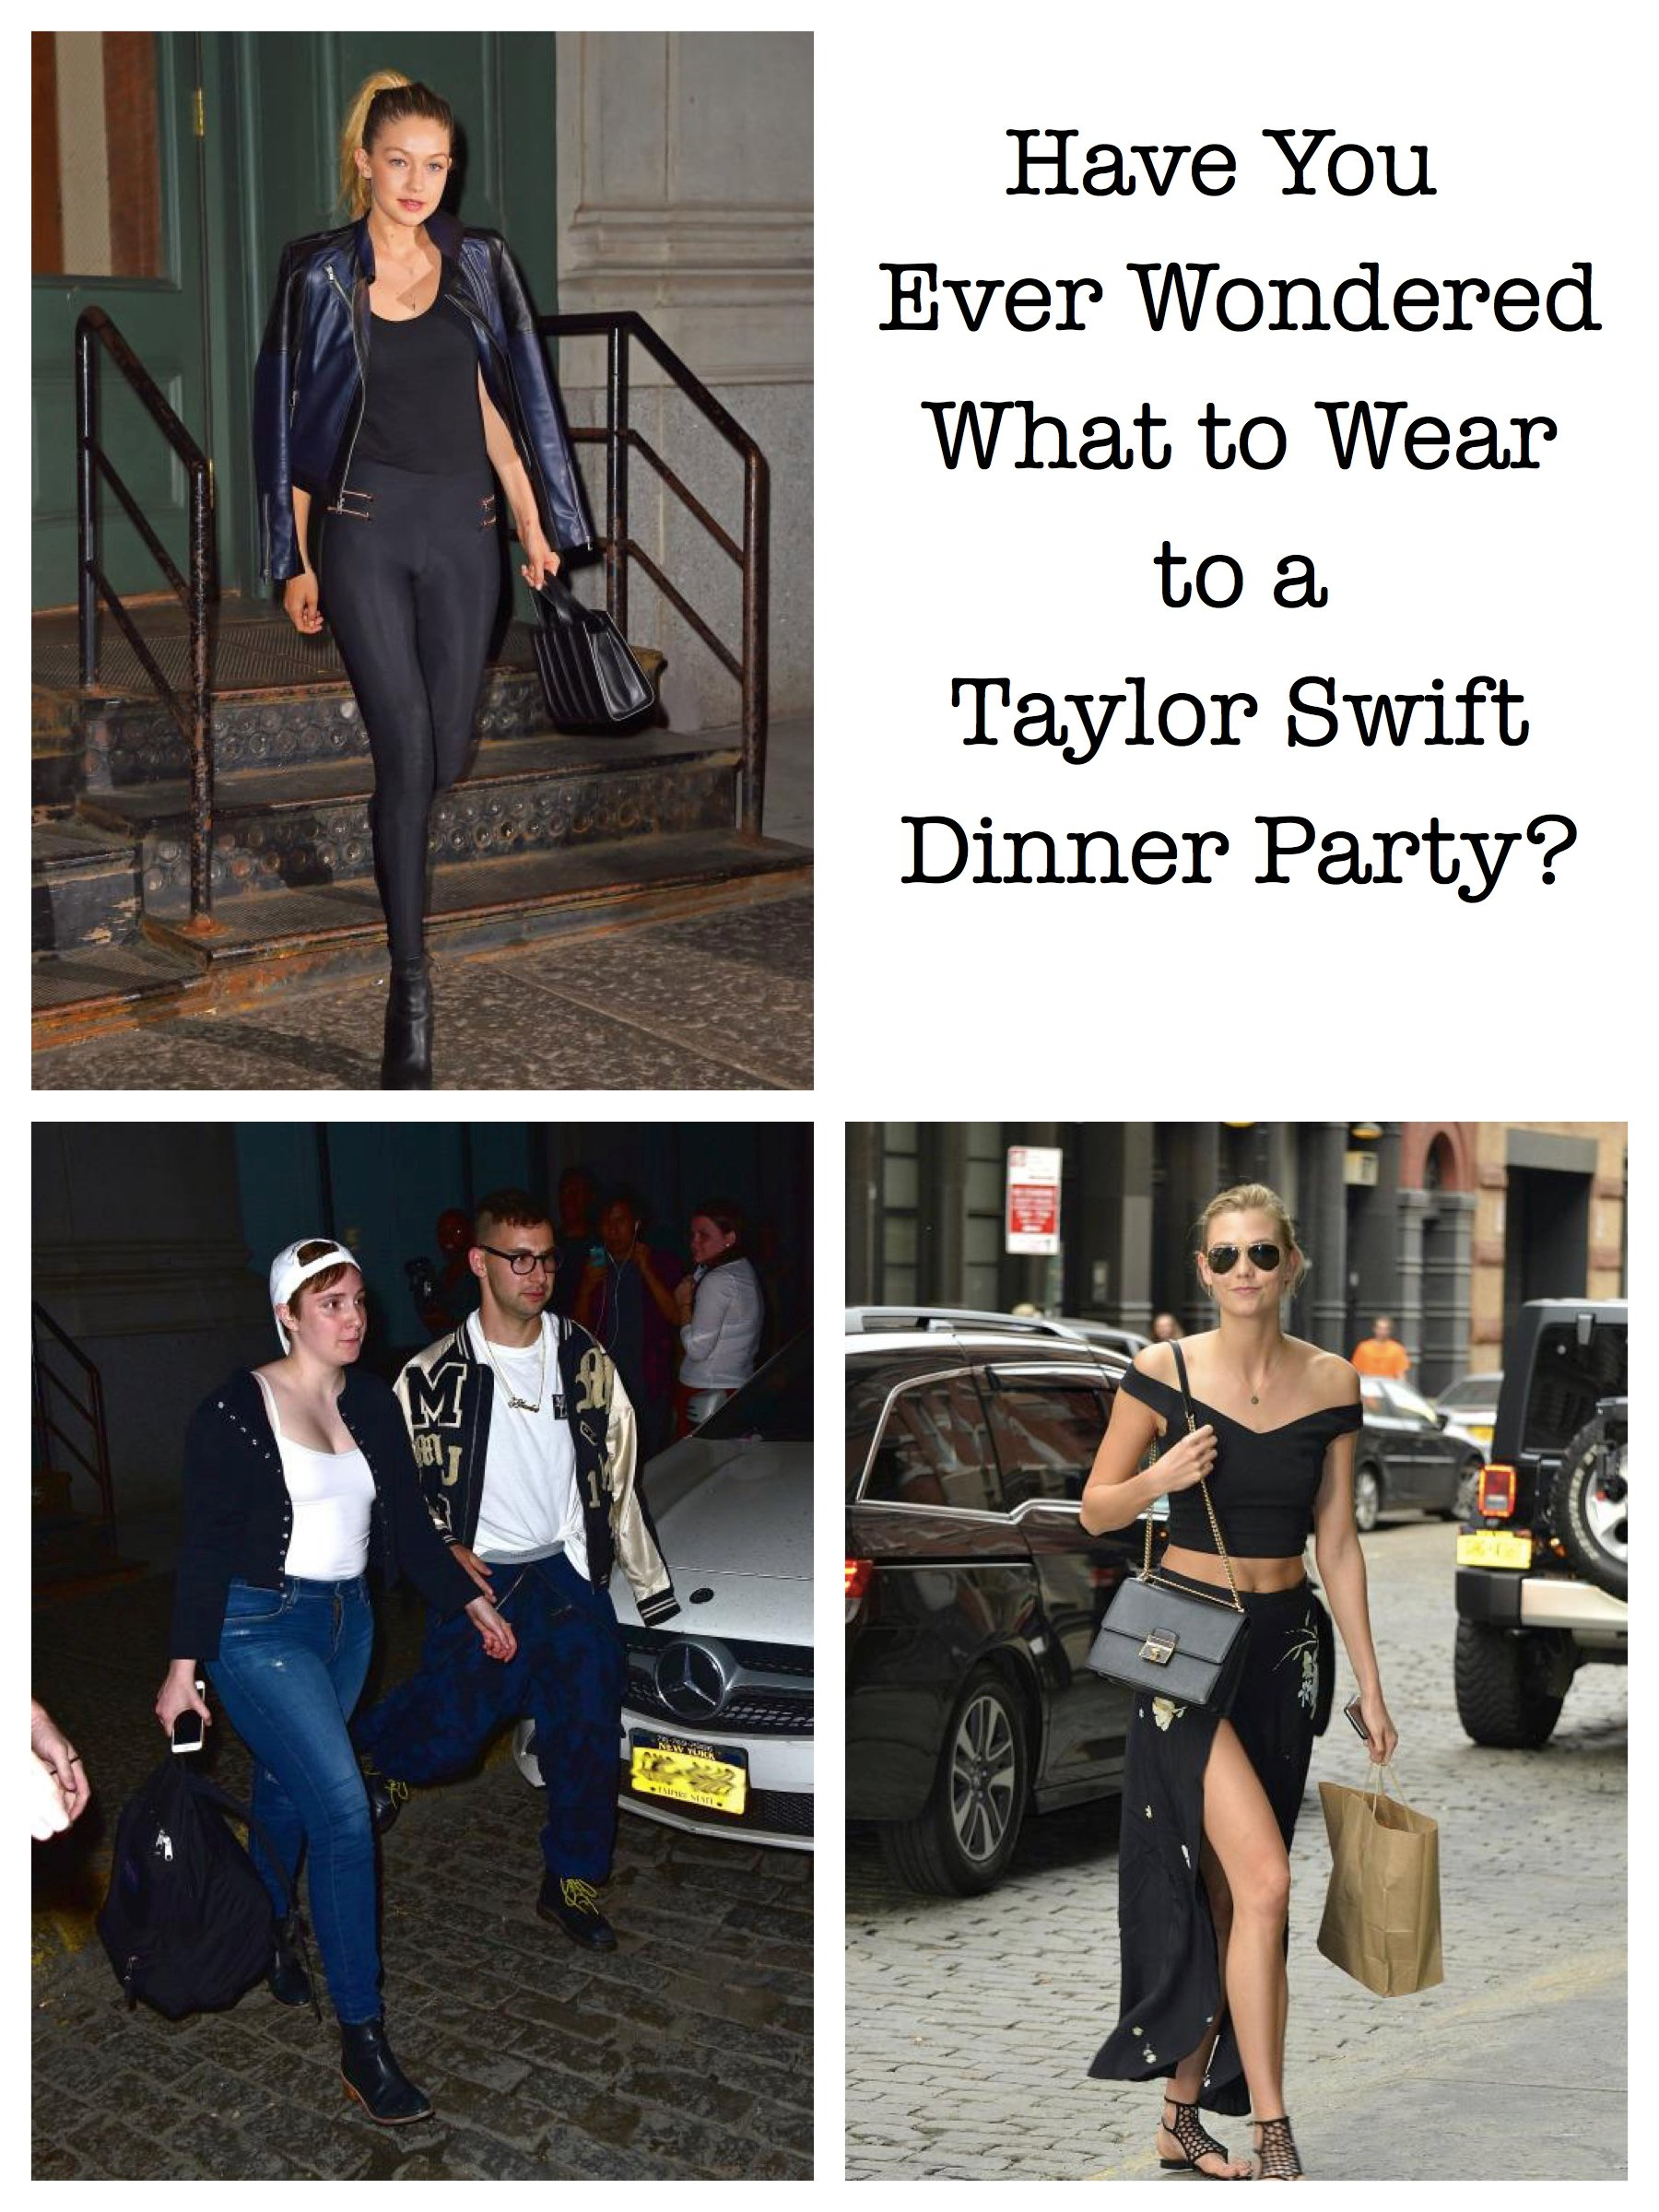 Have You Ever Wondered What to Wear to a Taylor Swift Dinner Party